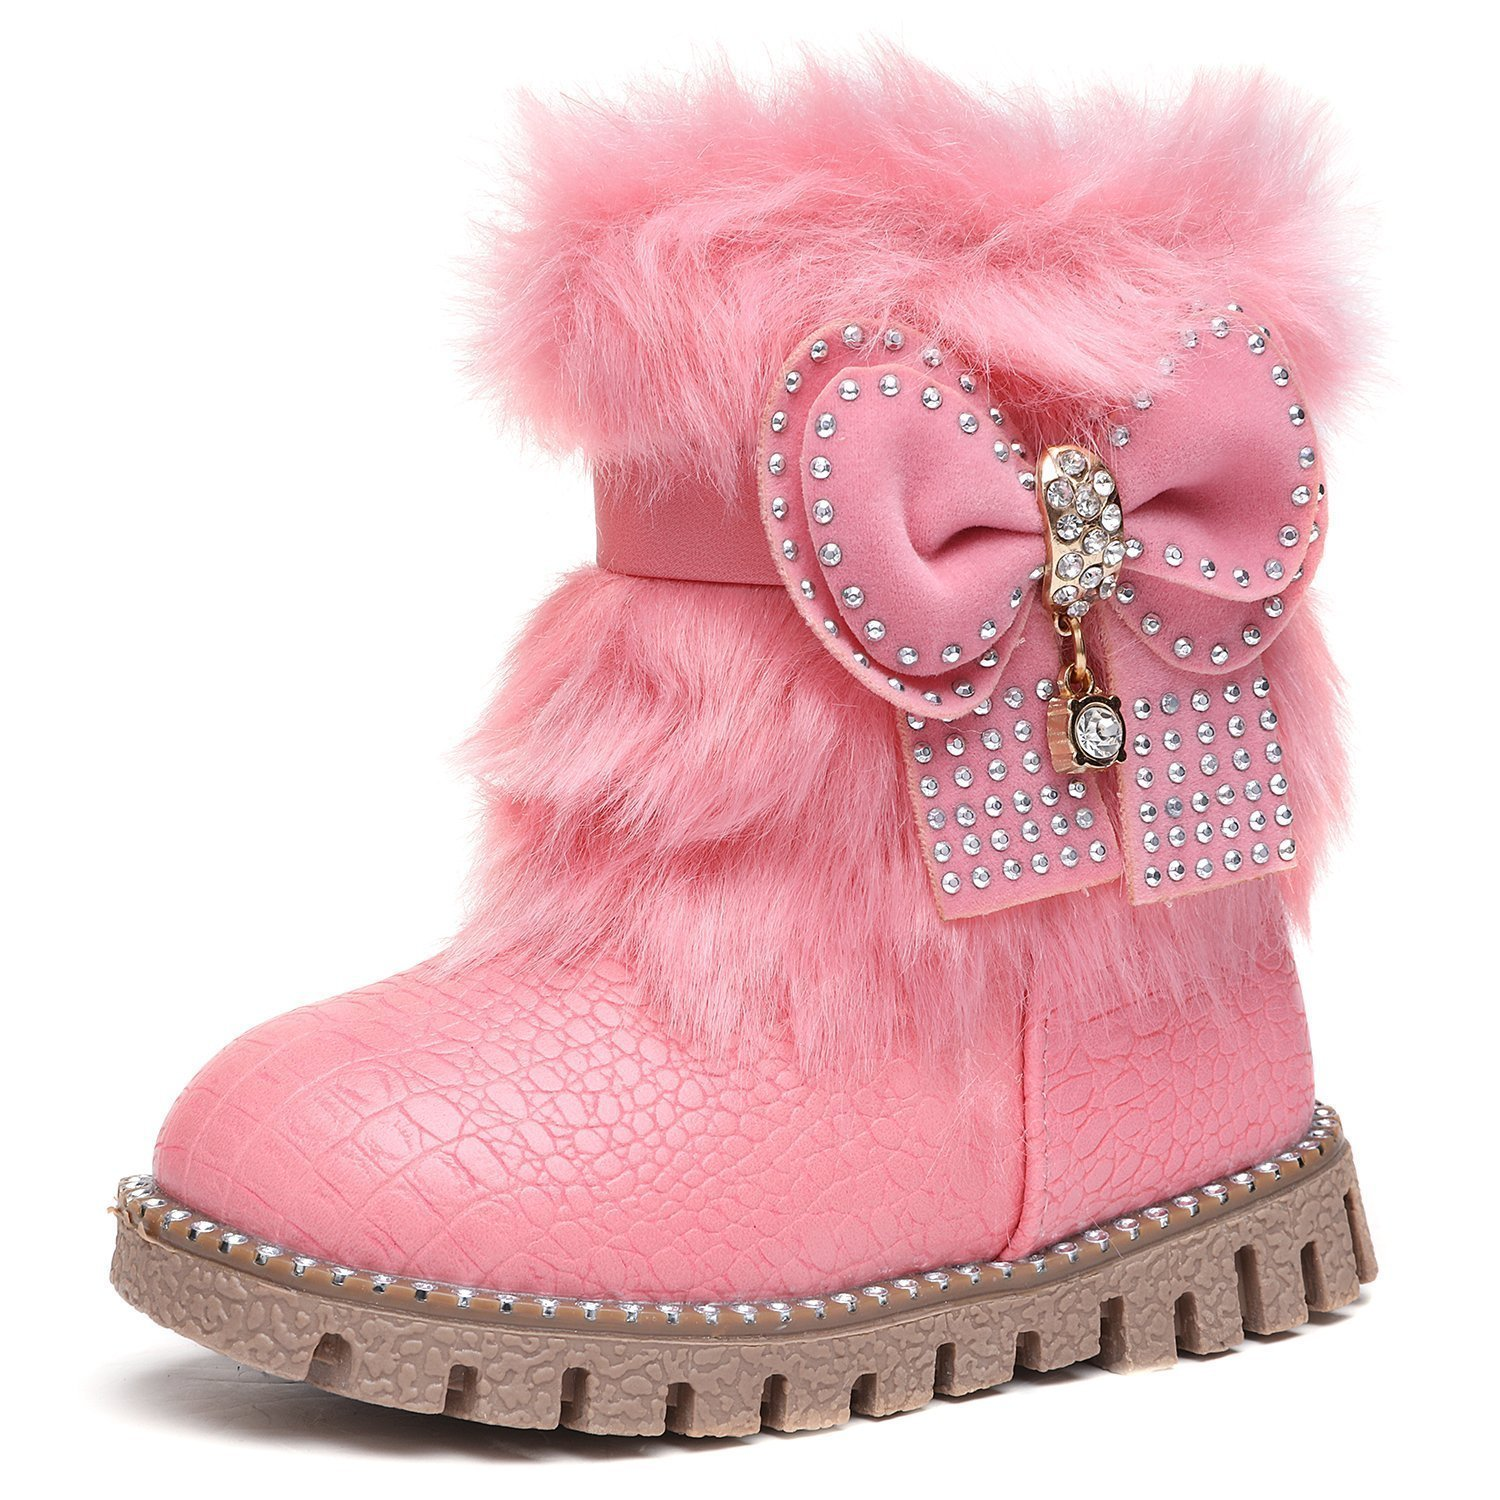 KVbaby Toddler Girls Bowknot Warm Winter Fur Snow Boots Baby Comfort Ankle Boots With Side Zipper